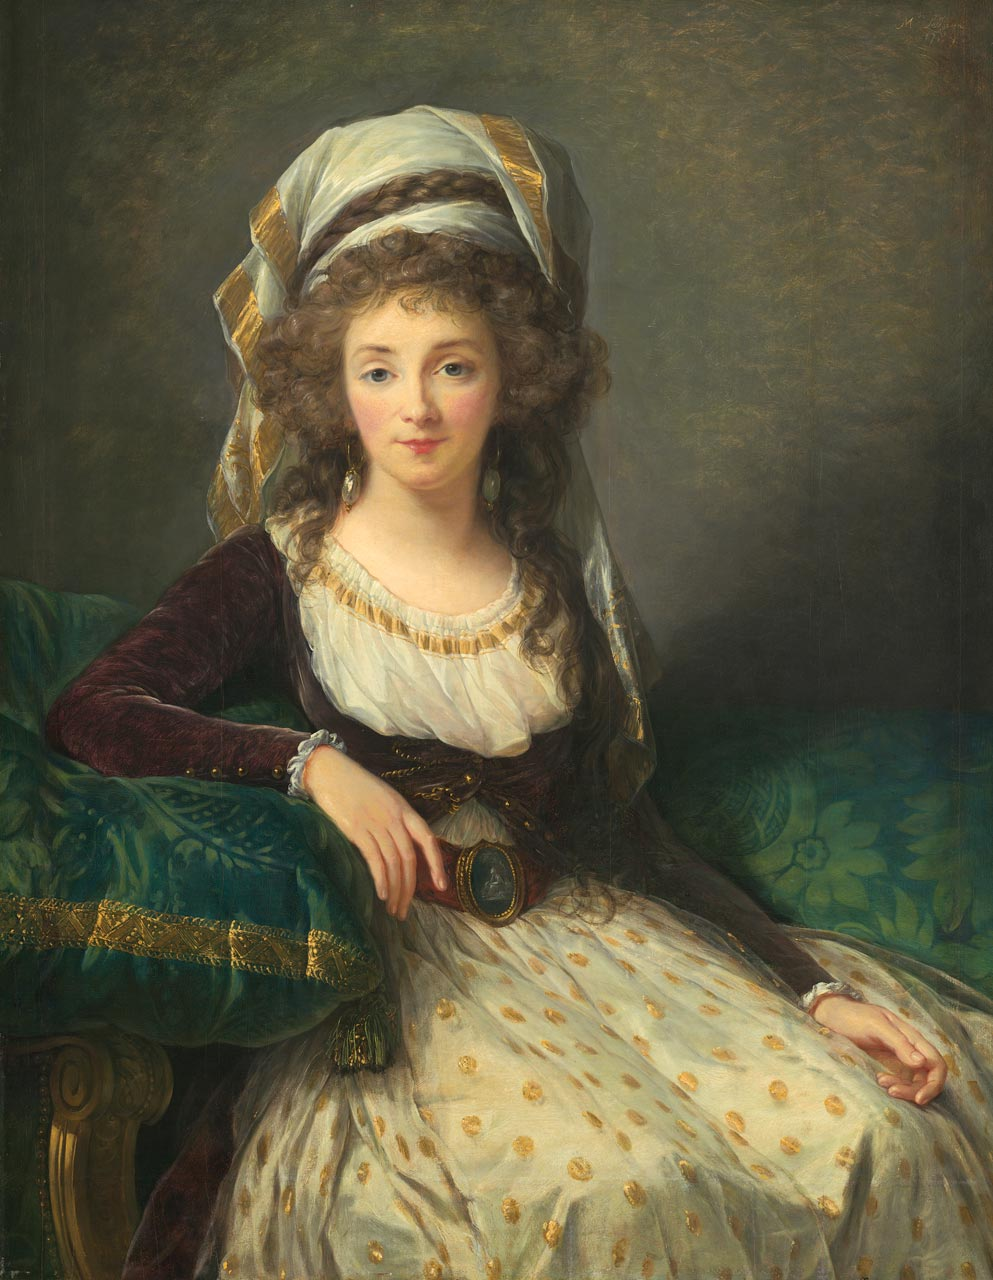 MADAME D'AGUESSEAU DE FRESNES by Elisabeth-Louise Vigée-LeBrun, 1789 . Courtesy of National Gallery of Art, Washington, D.C. Samuel H. Kress Collection (1946.7.16).